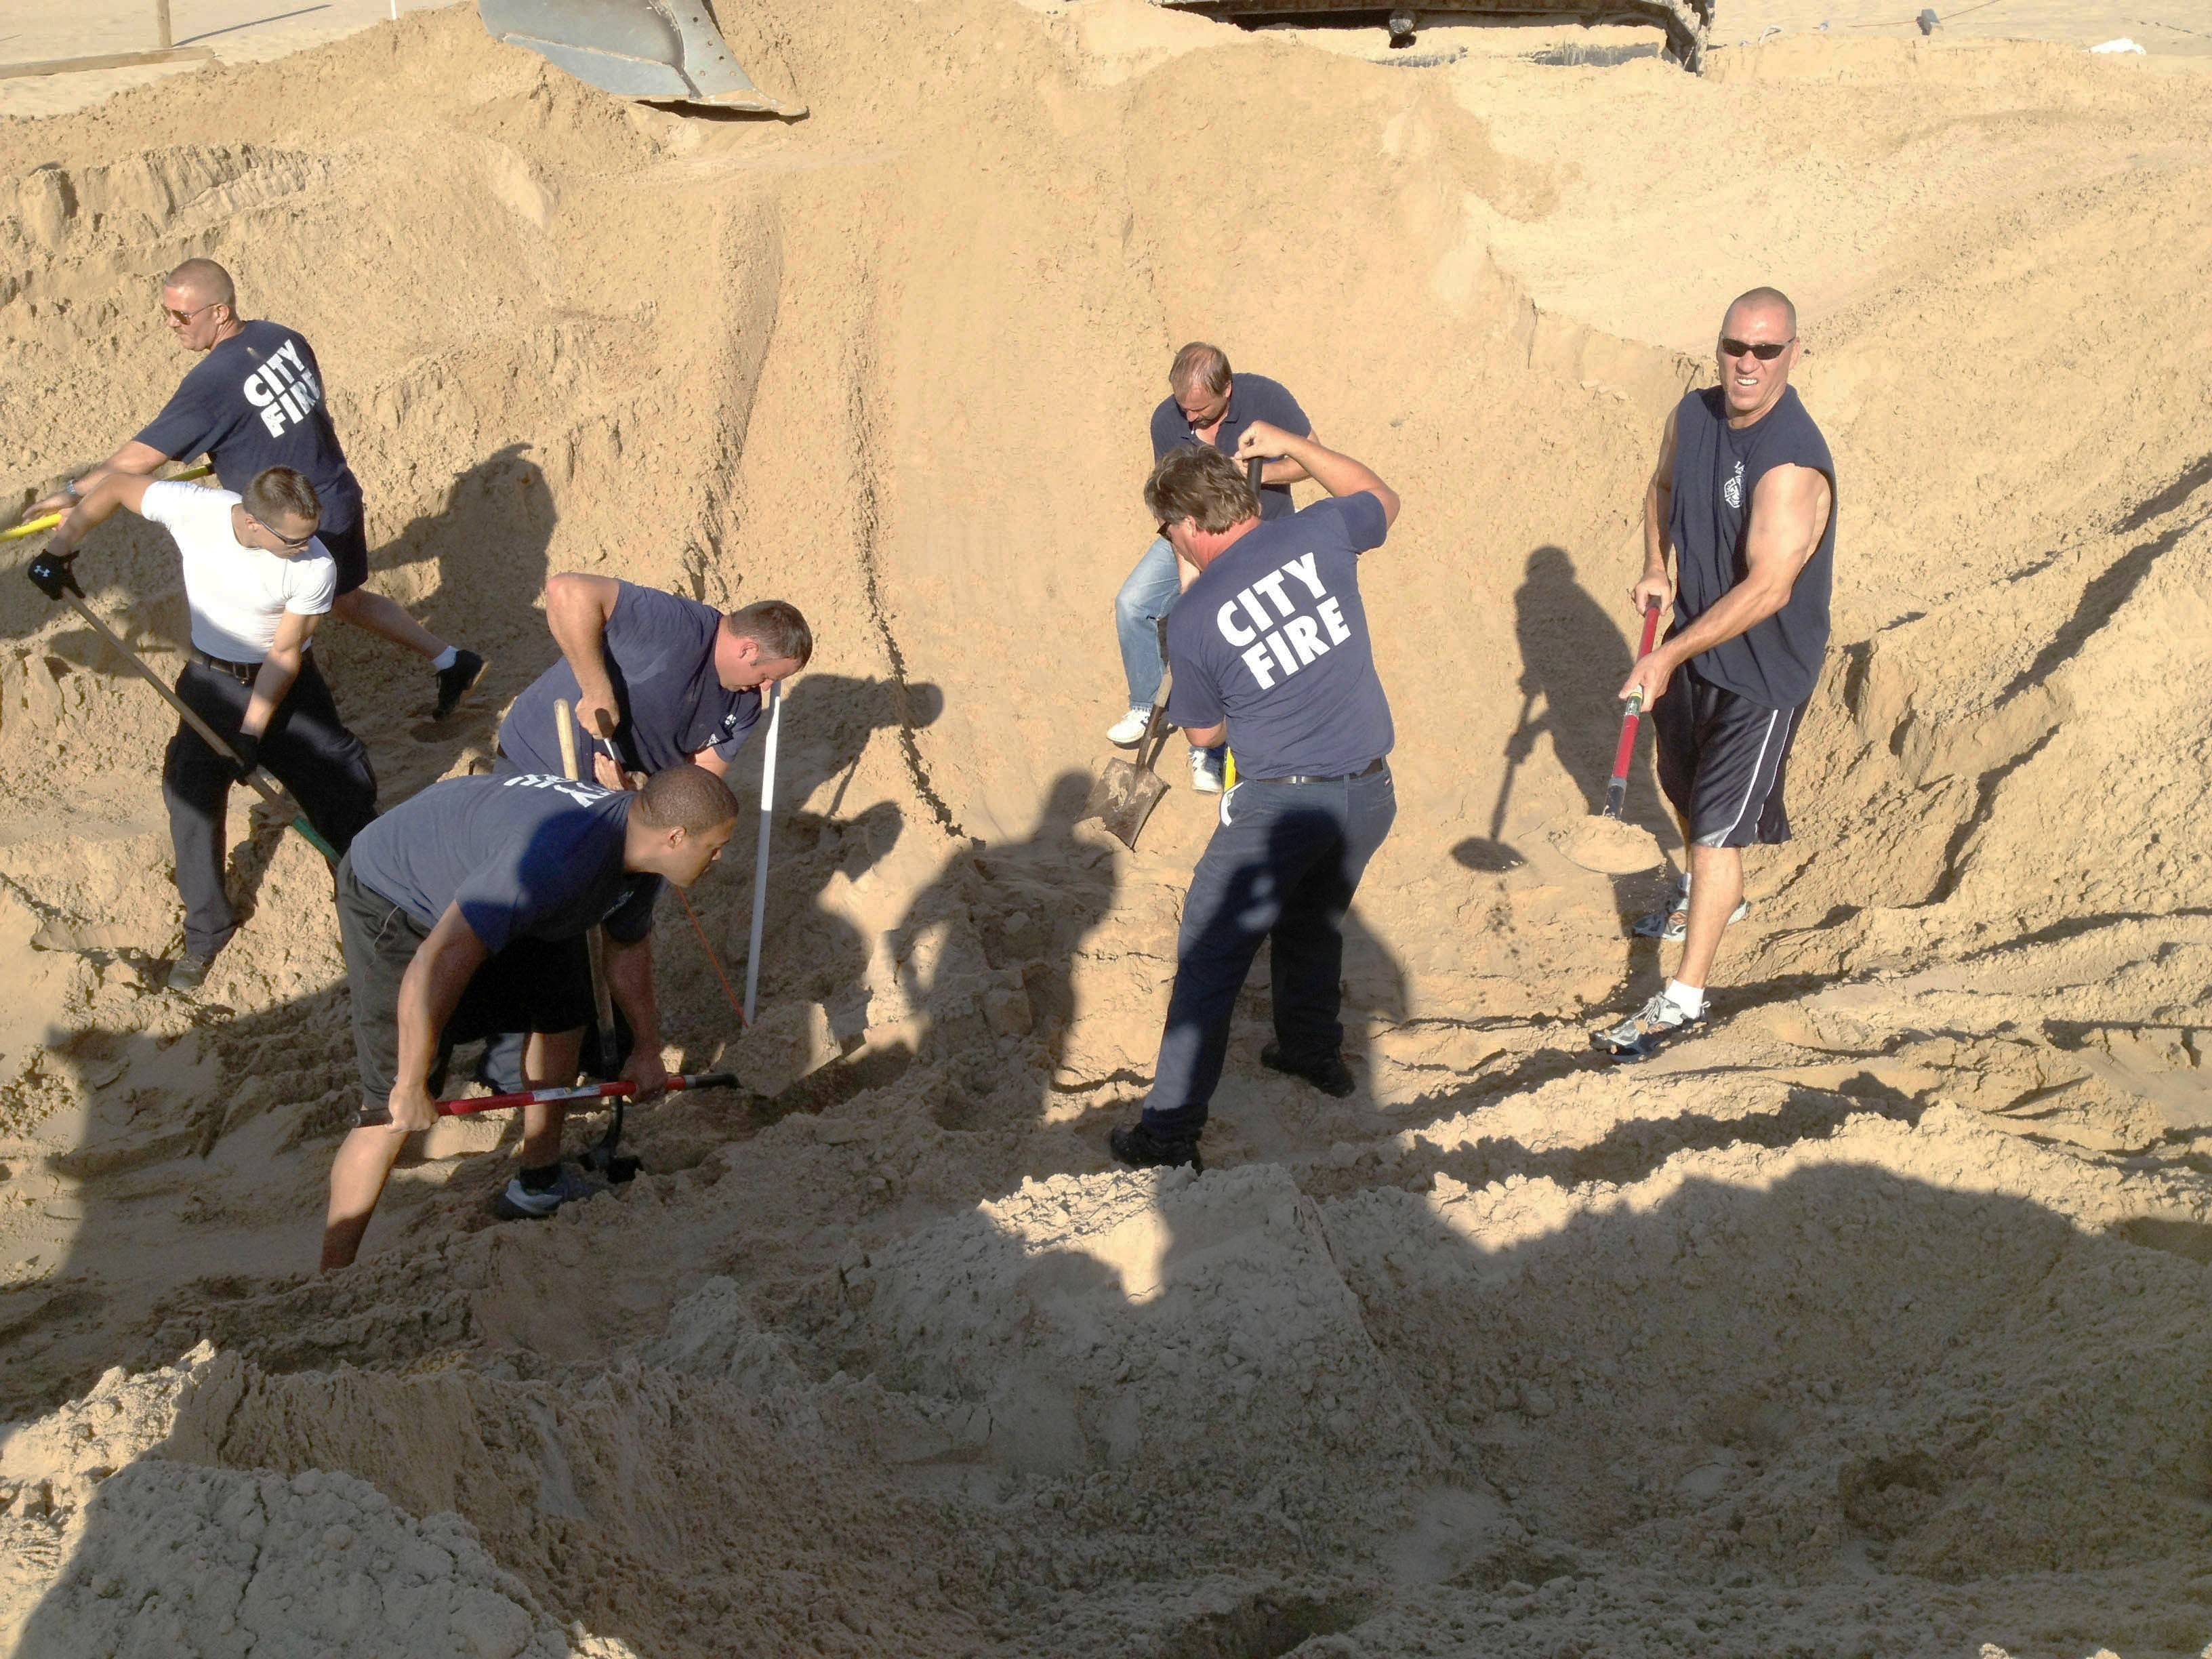 Police and firefighters dig to rescue Nathan Woessner of Sterling, Ill., who was trapped for more than three hours under about 11 feet of sand at Mount Baldy dune near Michigan City, Ind.